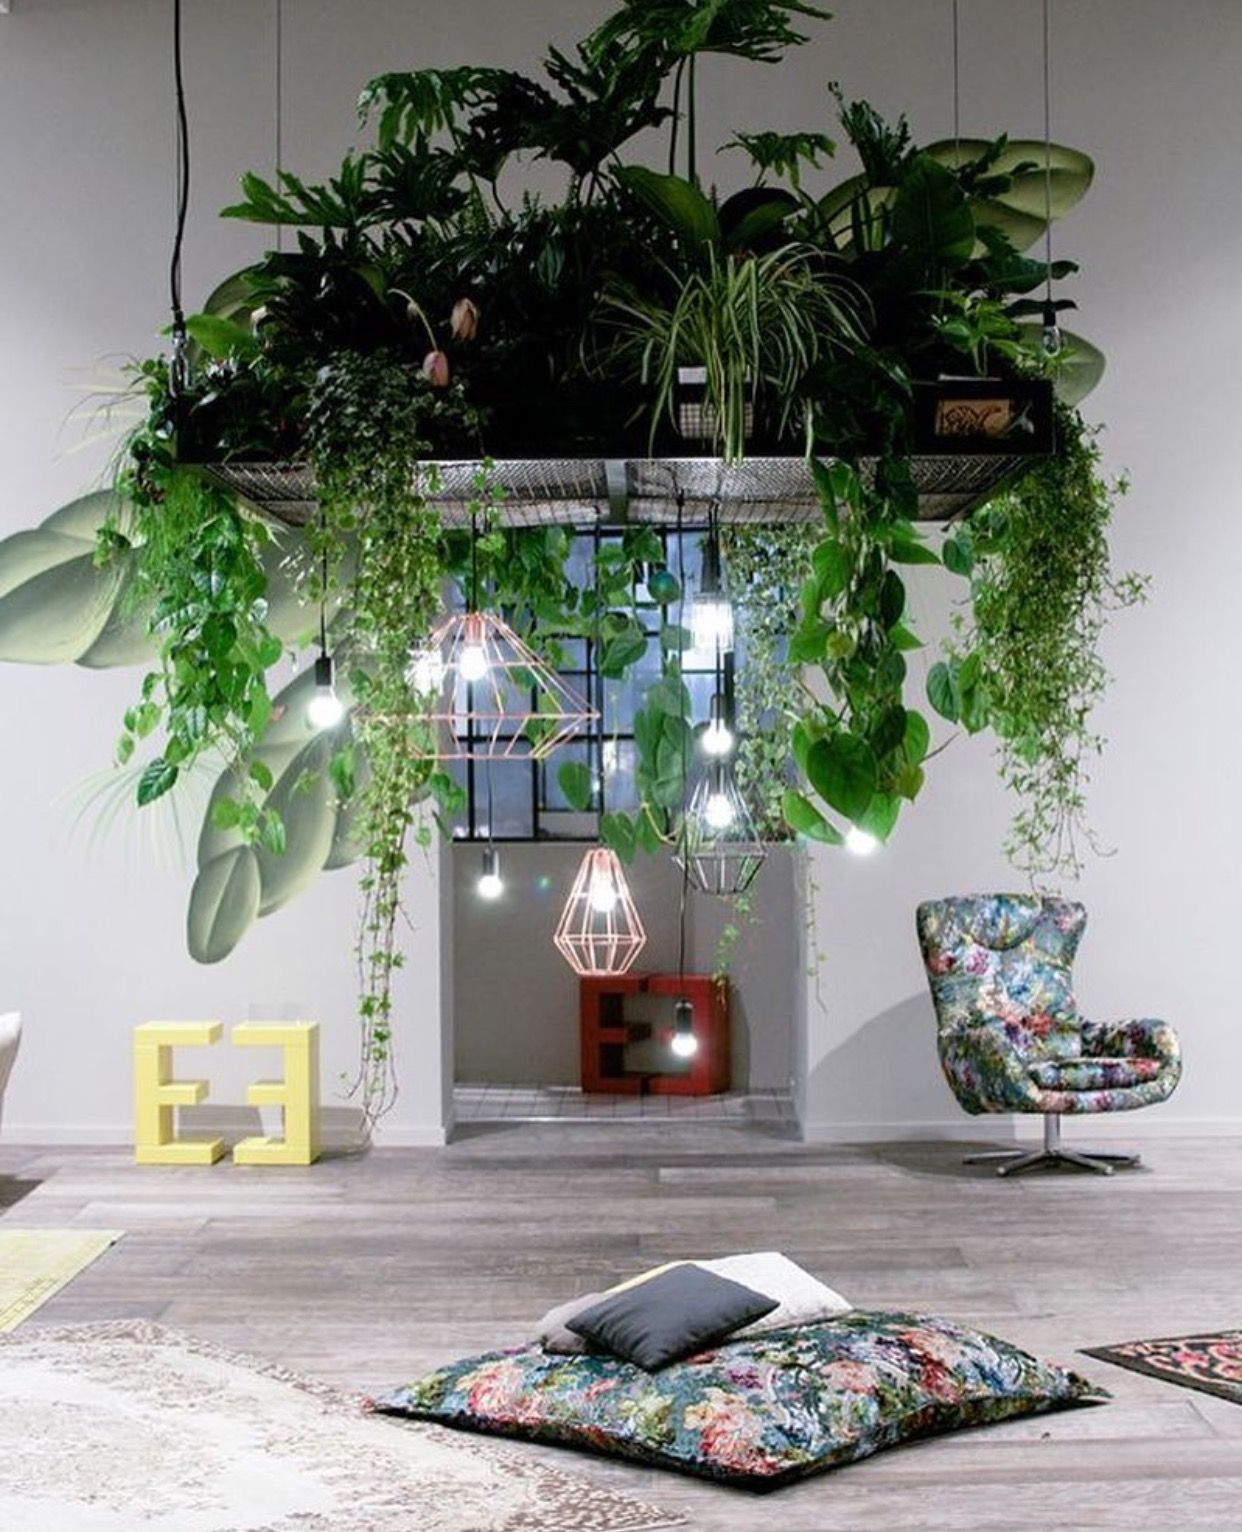 Cool Plants For Your Room Living Room Next To Back Door Higher Remove Light And